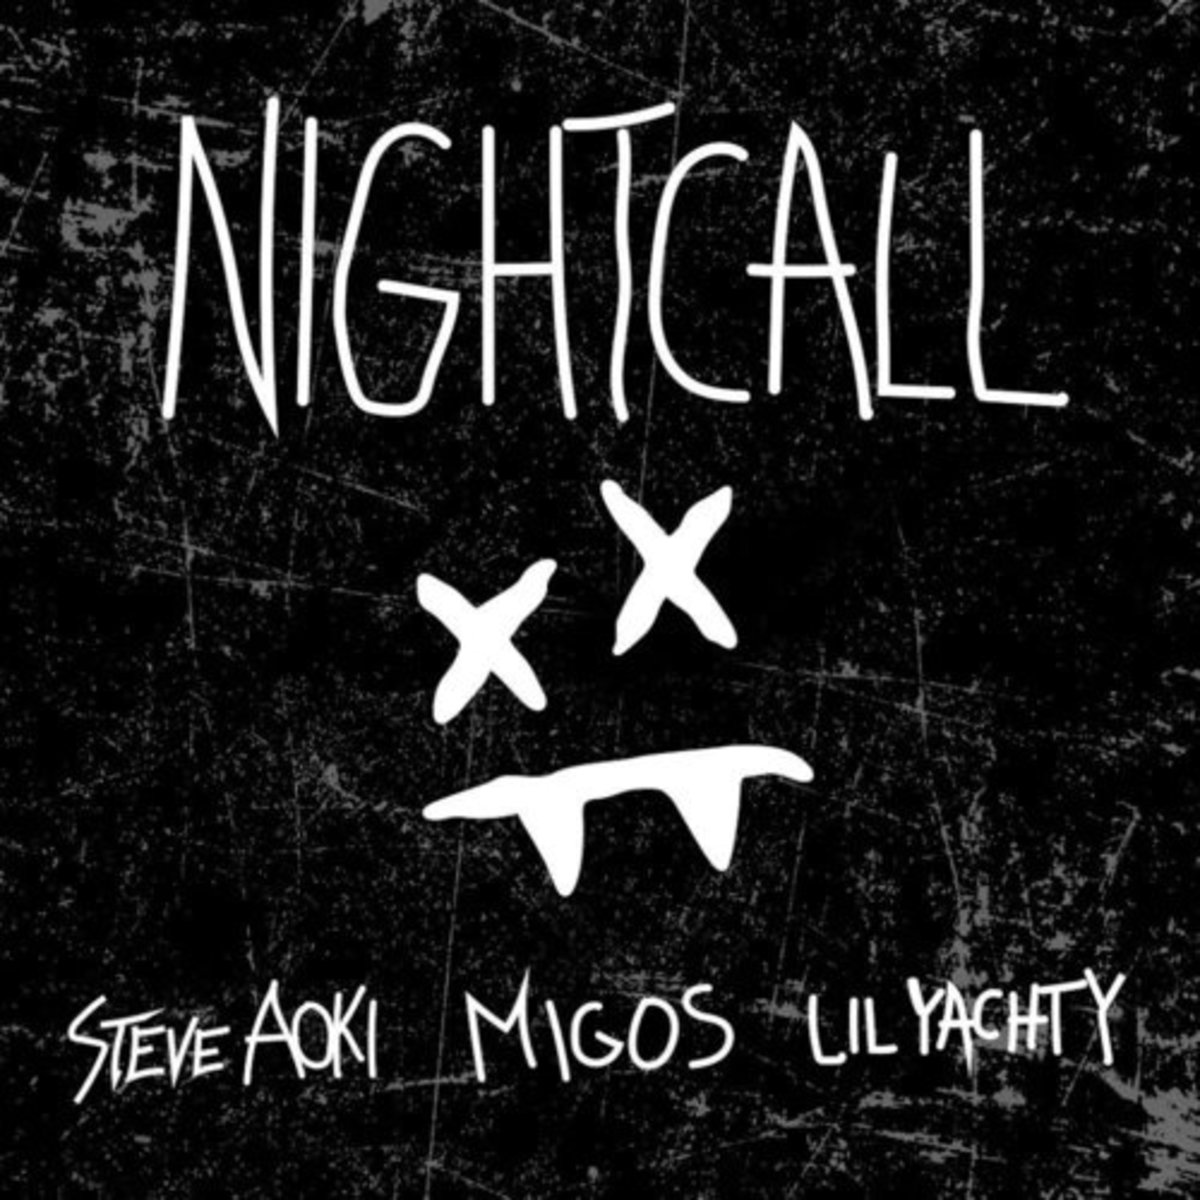 steve-aoki-night-call.jpg